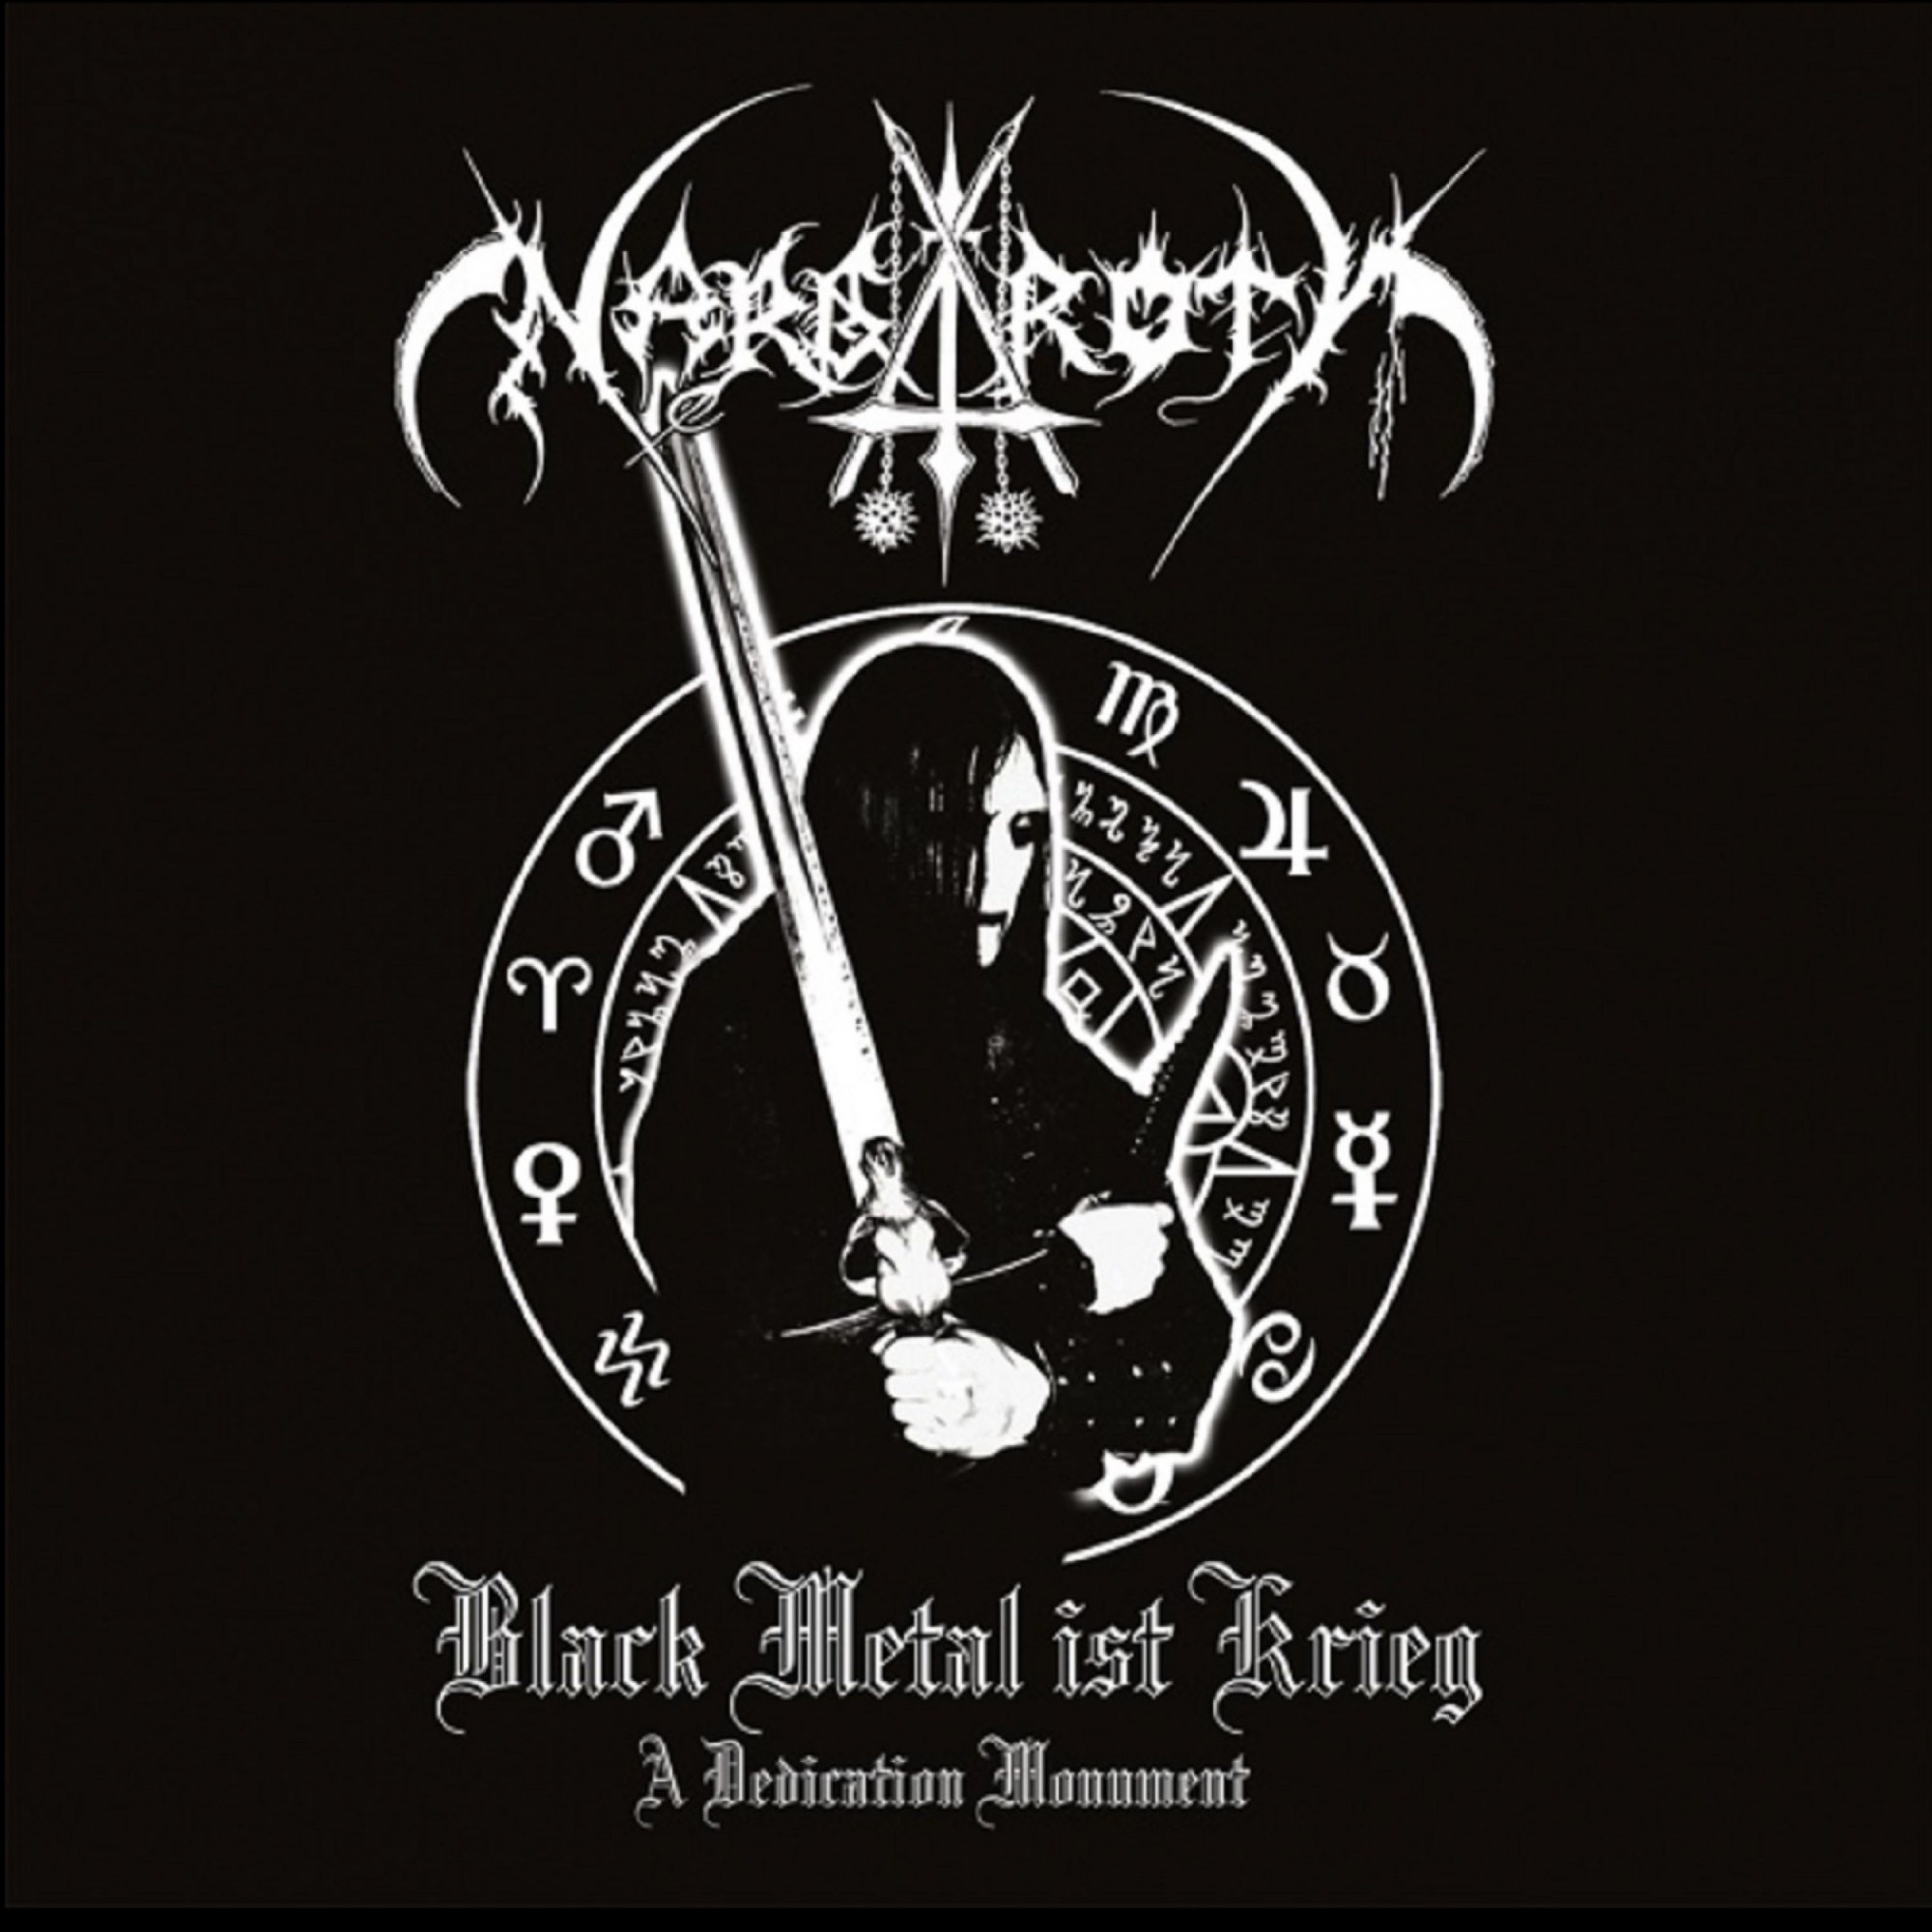 Nargaroth - Black Metal Ist Krieg (A Dedication Monument)